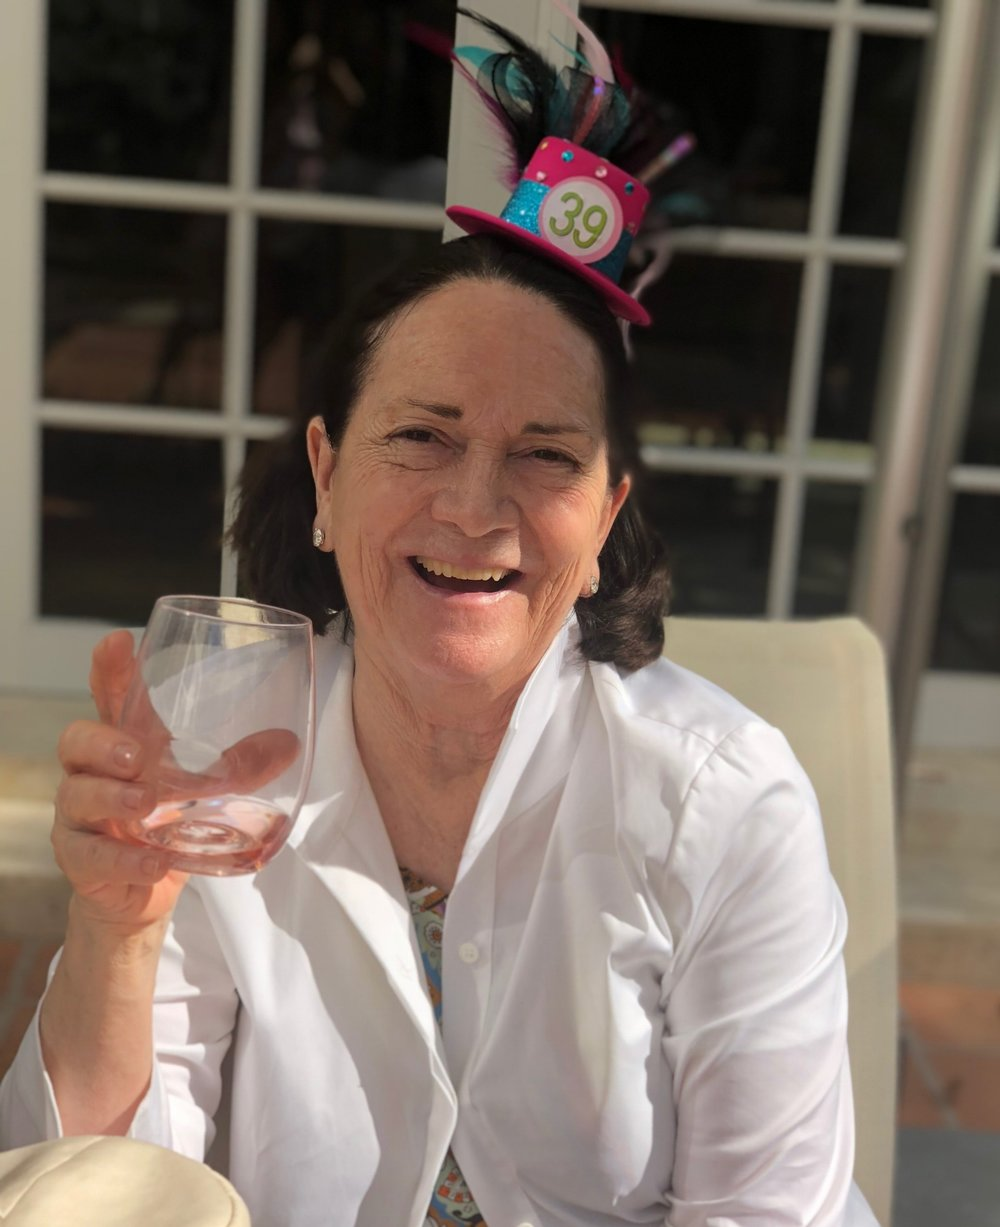 Leslie's mom Mara at her birthday party in Miami